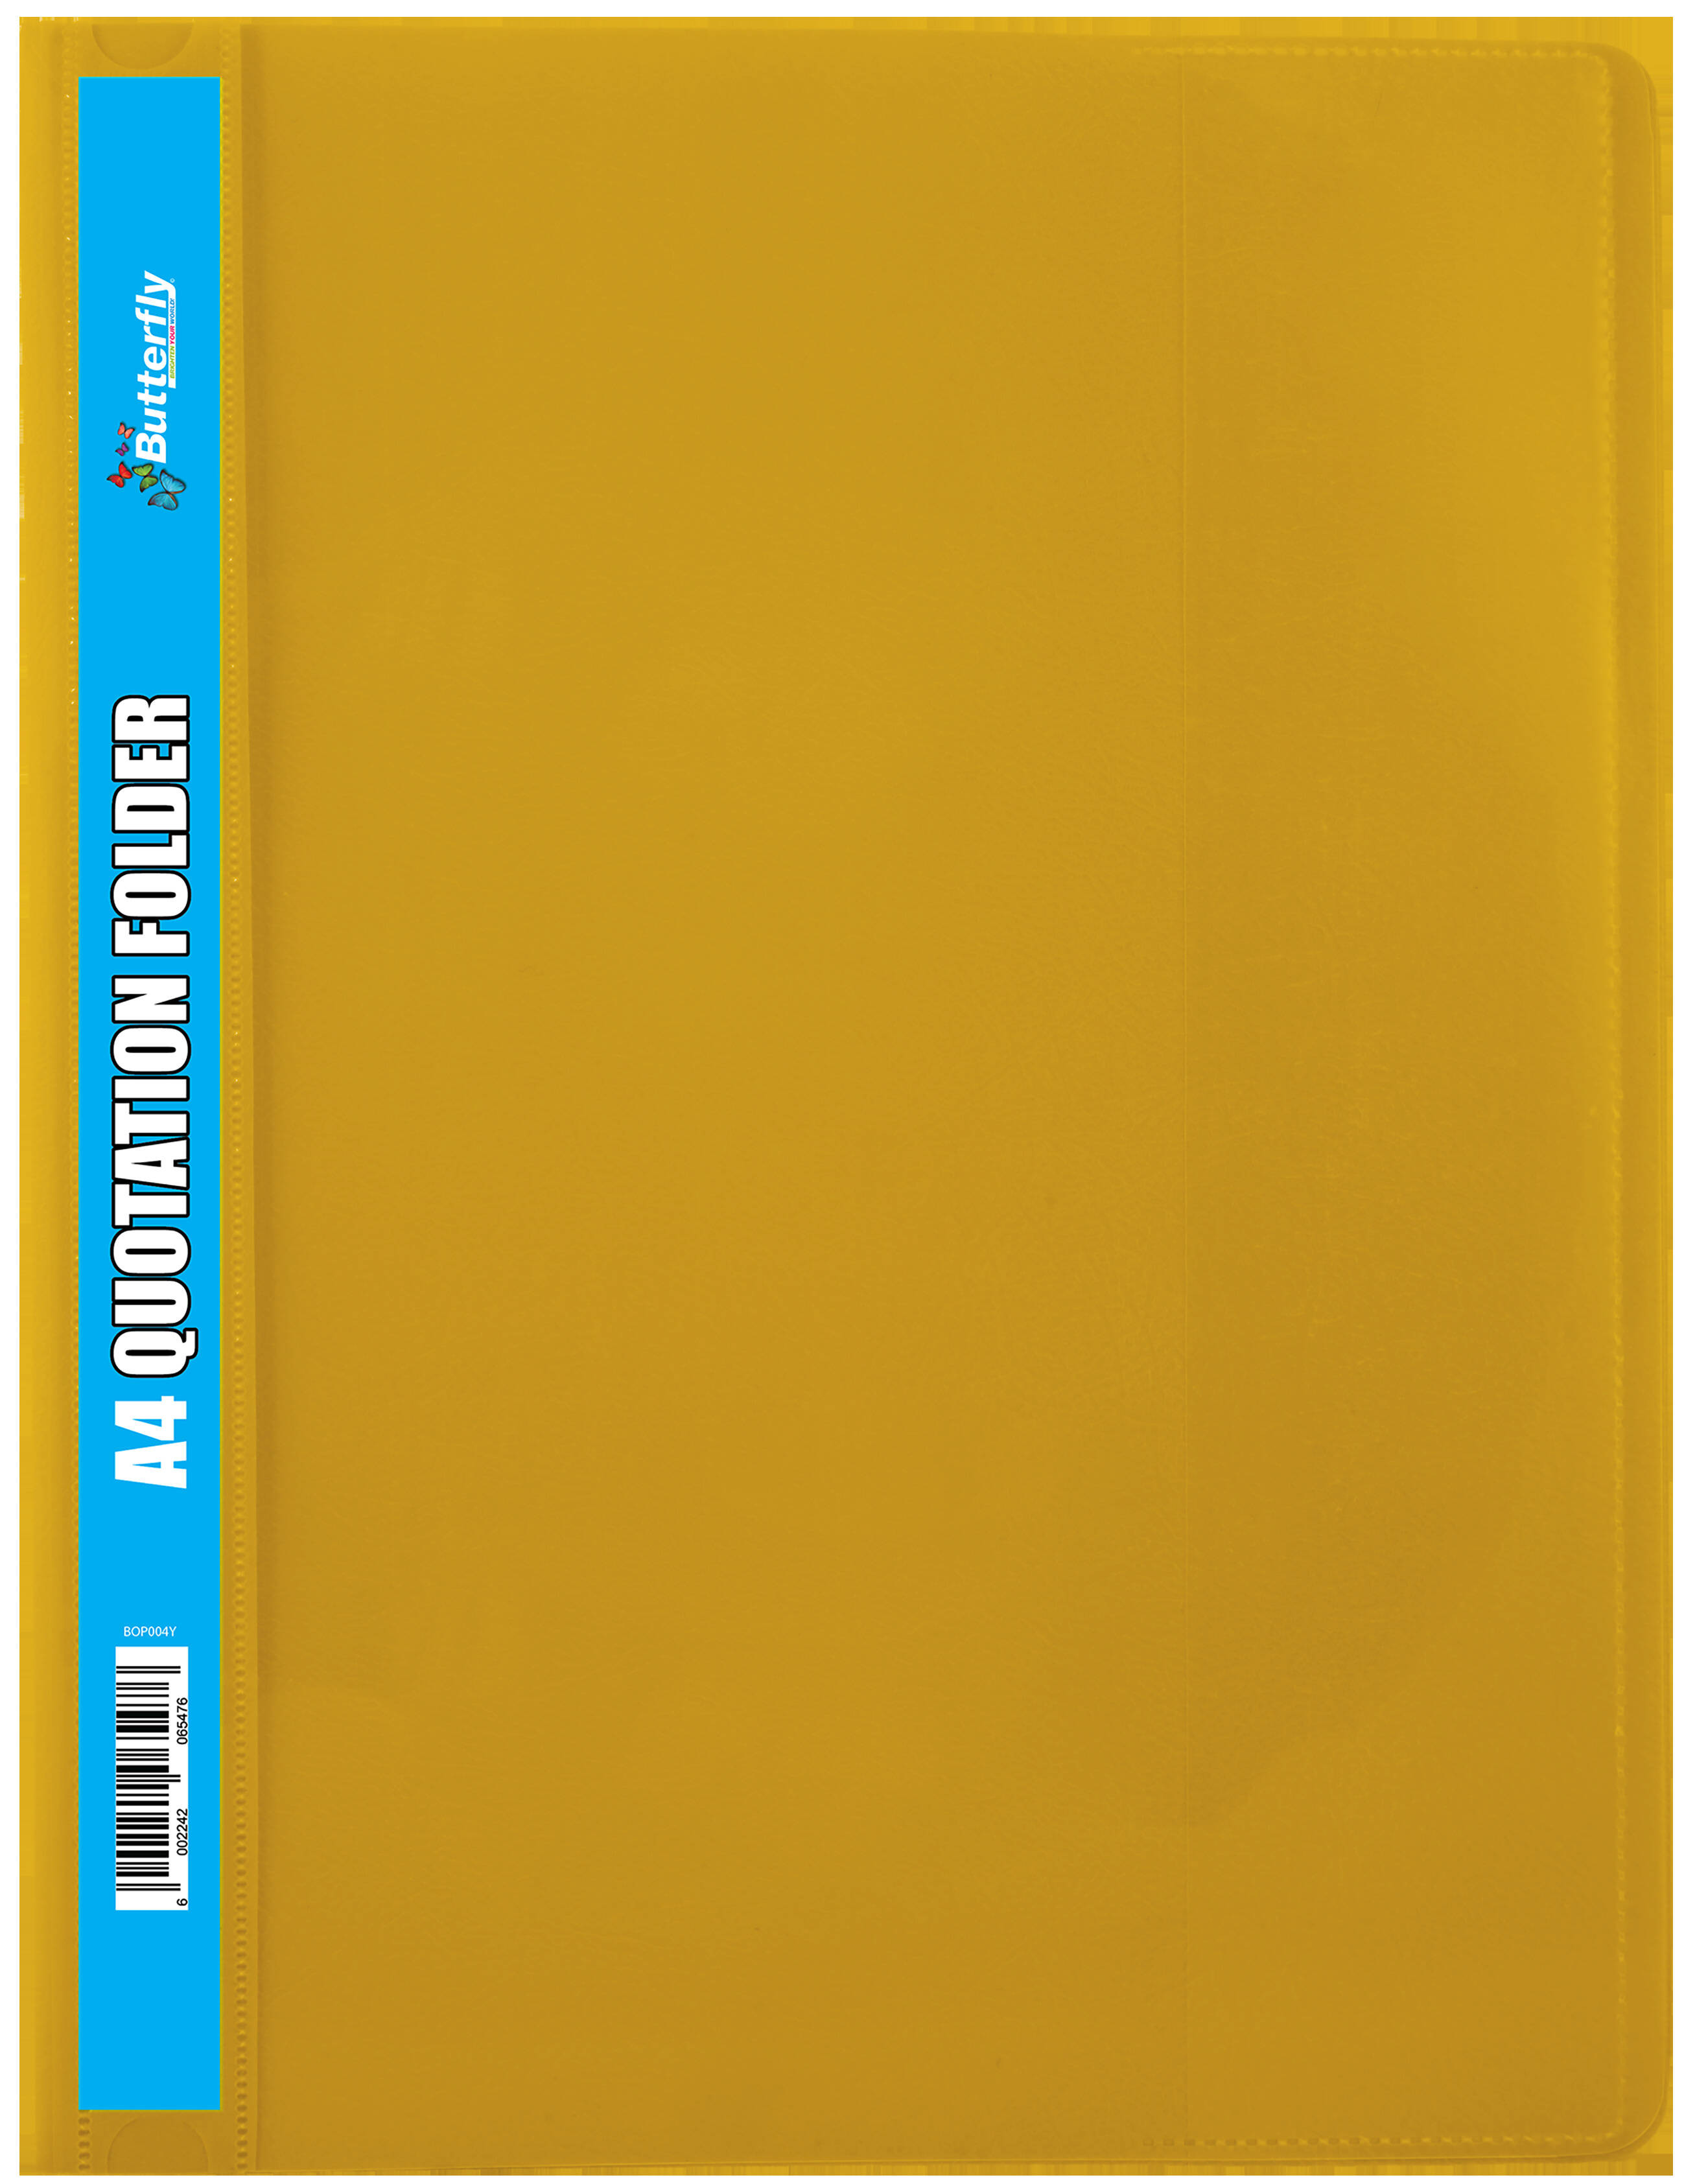 A4 Quotation Folders - 180 Micron - Yellow